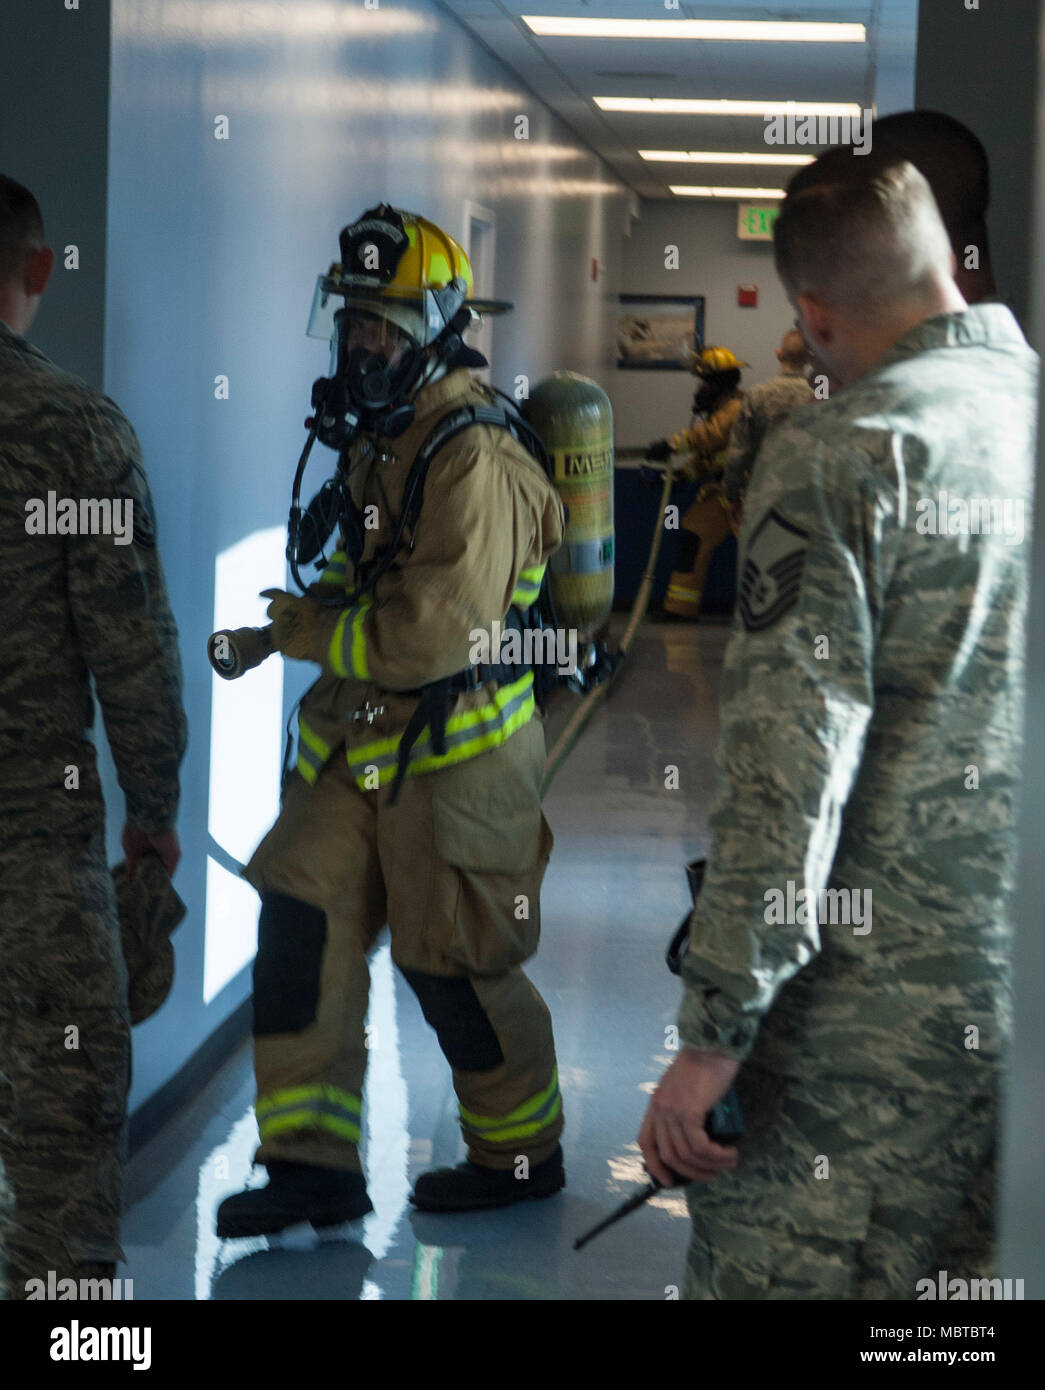 """Master Sgt. Jason Legget, a firefighter supervisor assigned to the 152nd Civil Engineer Squadron is overseeing firefighters in a structure at the Nevada Air National Guard base January 7, 2018.  Leggett said """"Exercises like this get the firefighters out of their comfort zone."""" Stock Photo"""